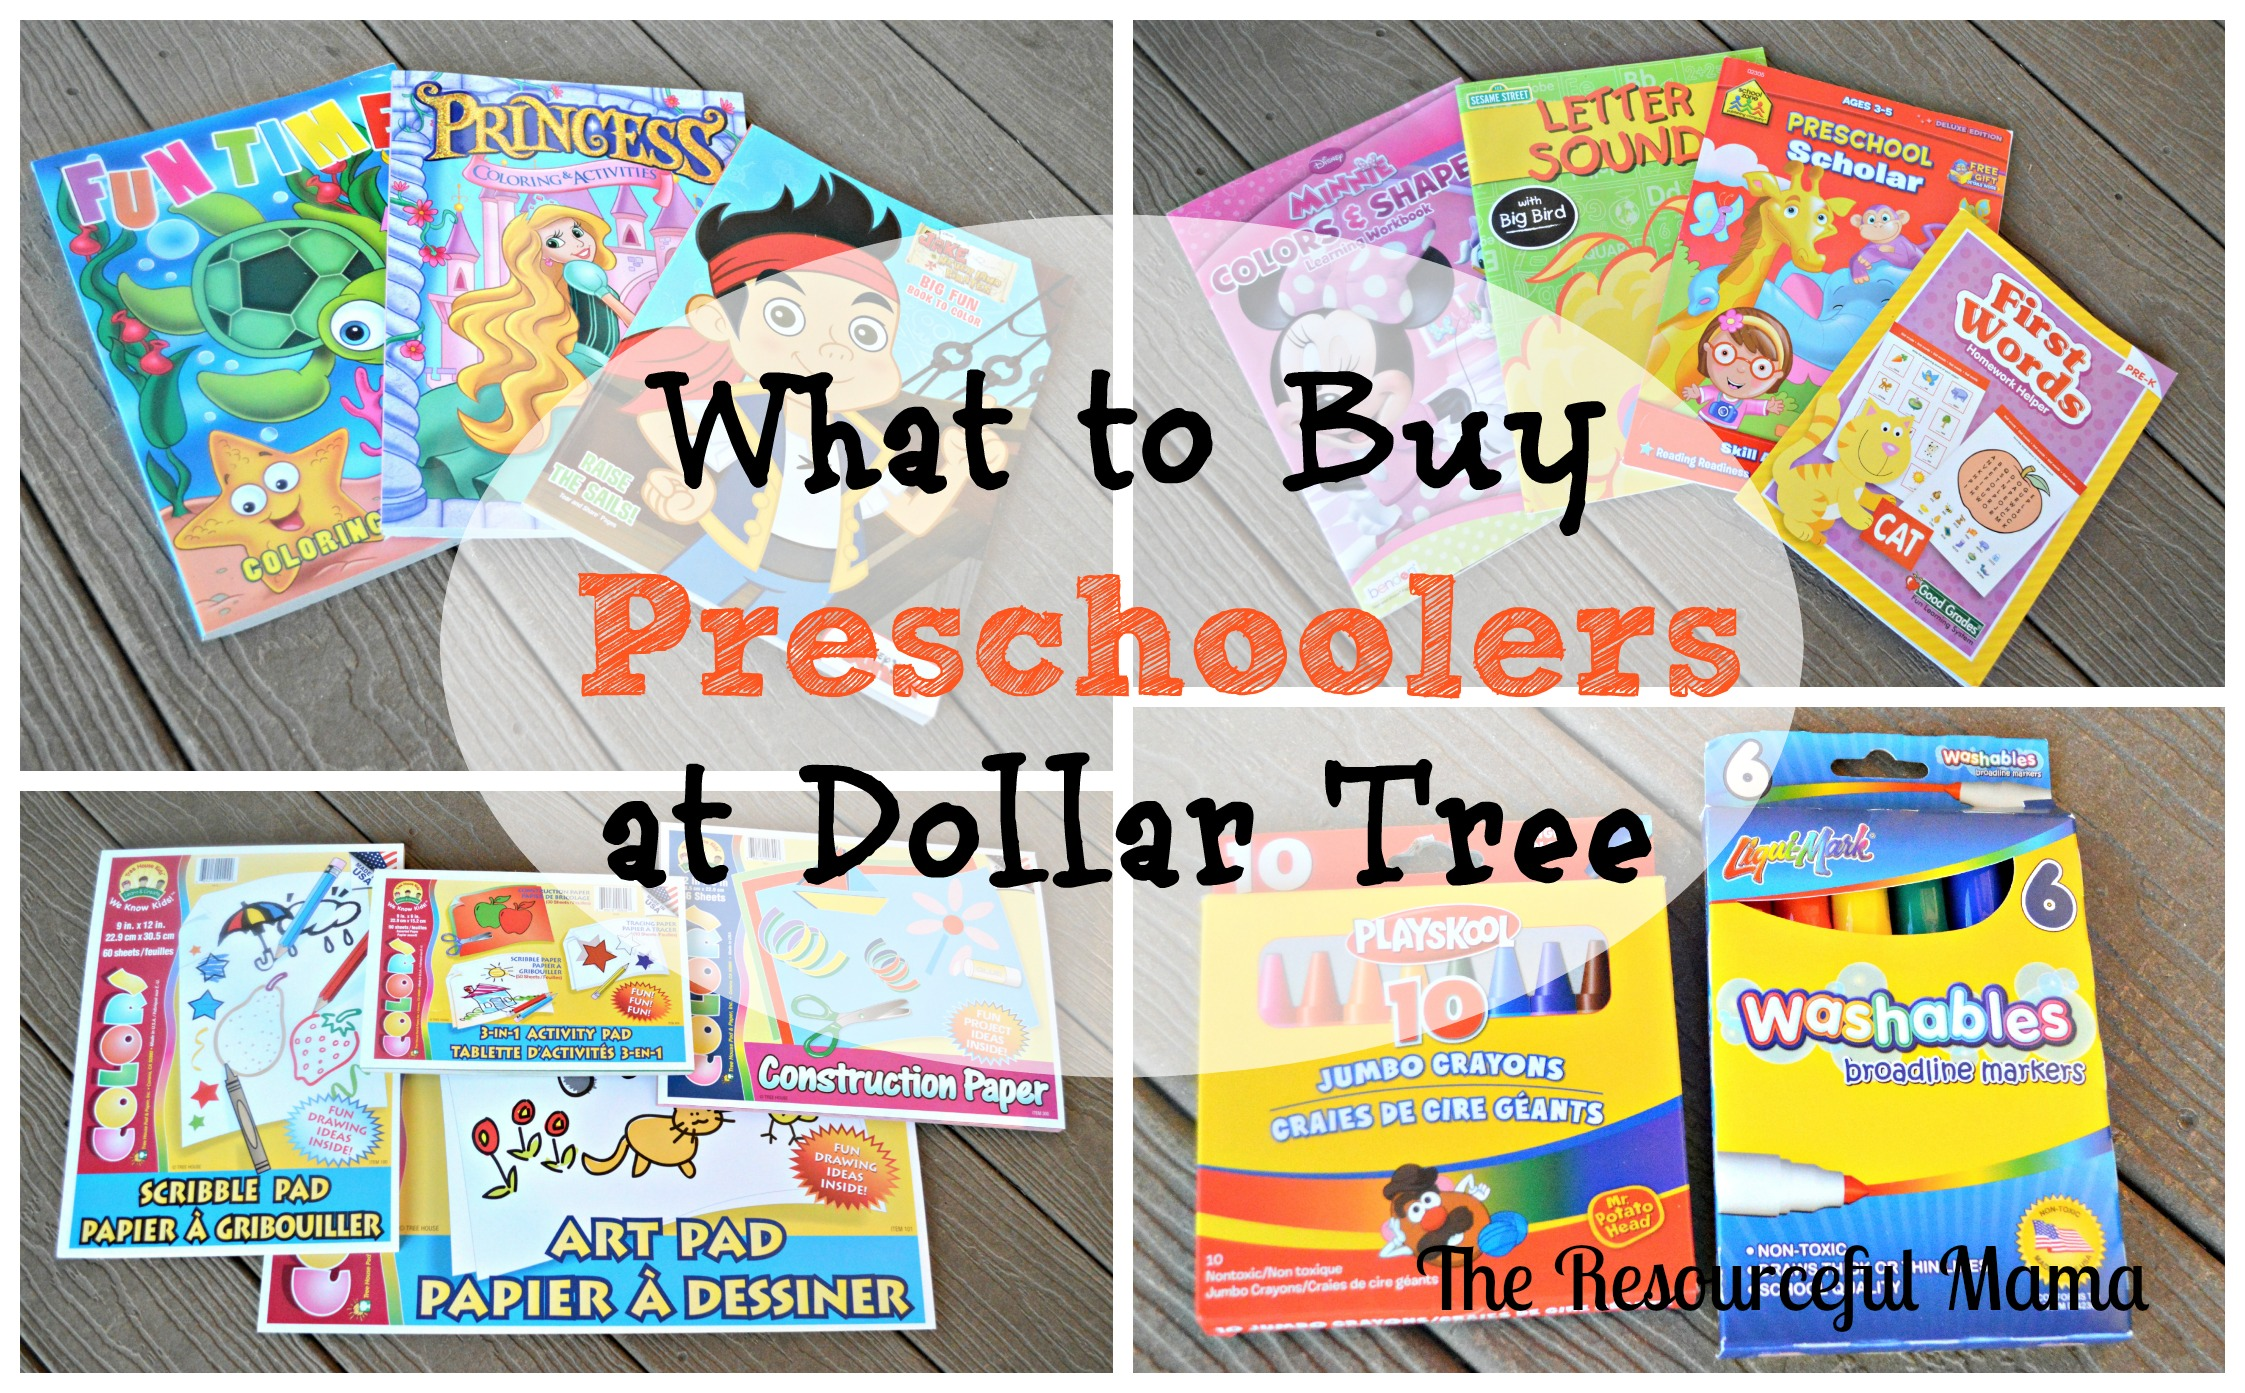 what to buy preschoolers at dollar tree - Dollar Tree Coloring Books